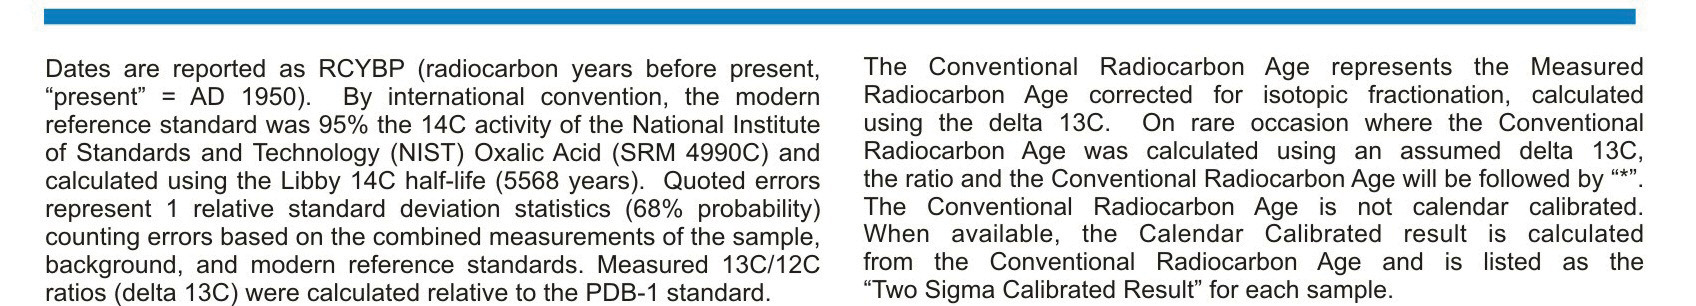 Radiocarbon dating inledning